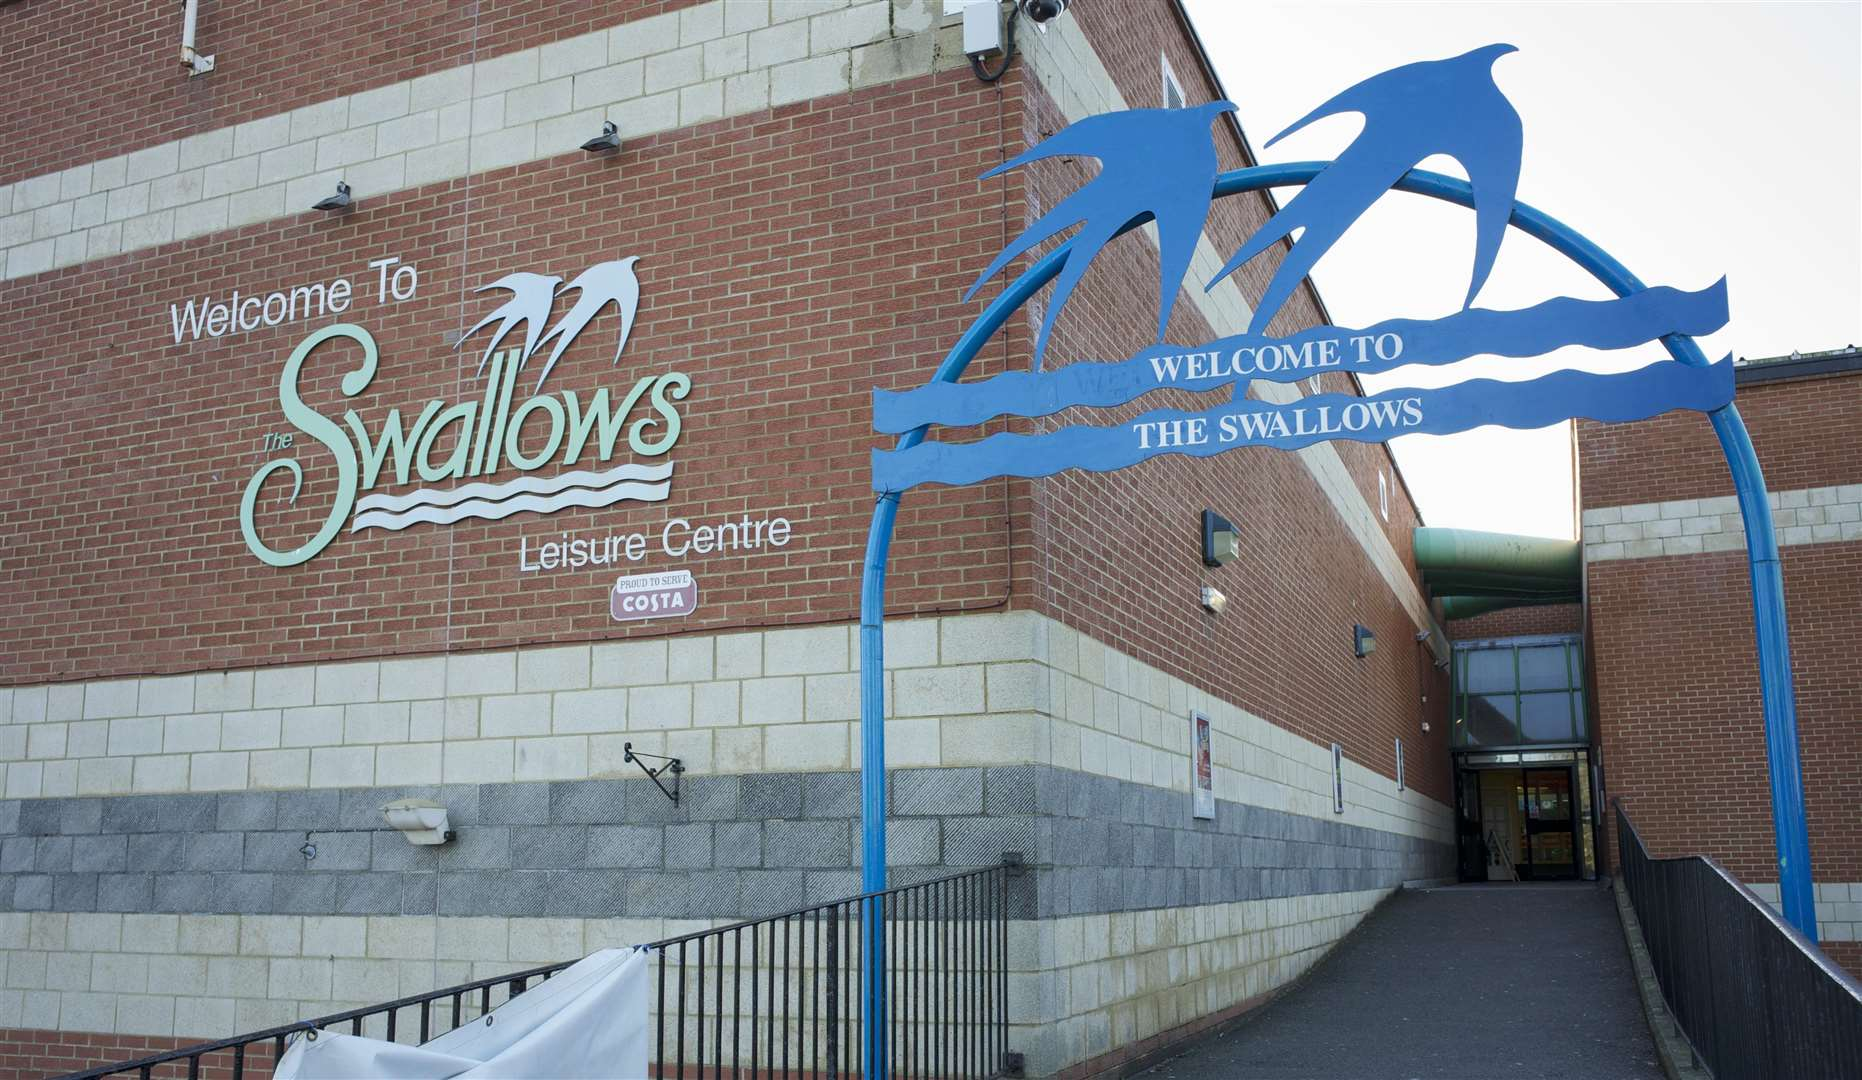 The Swallows Leisure Centre